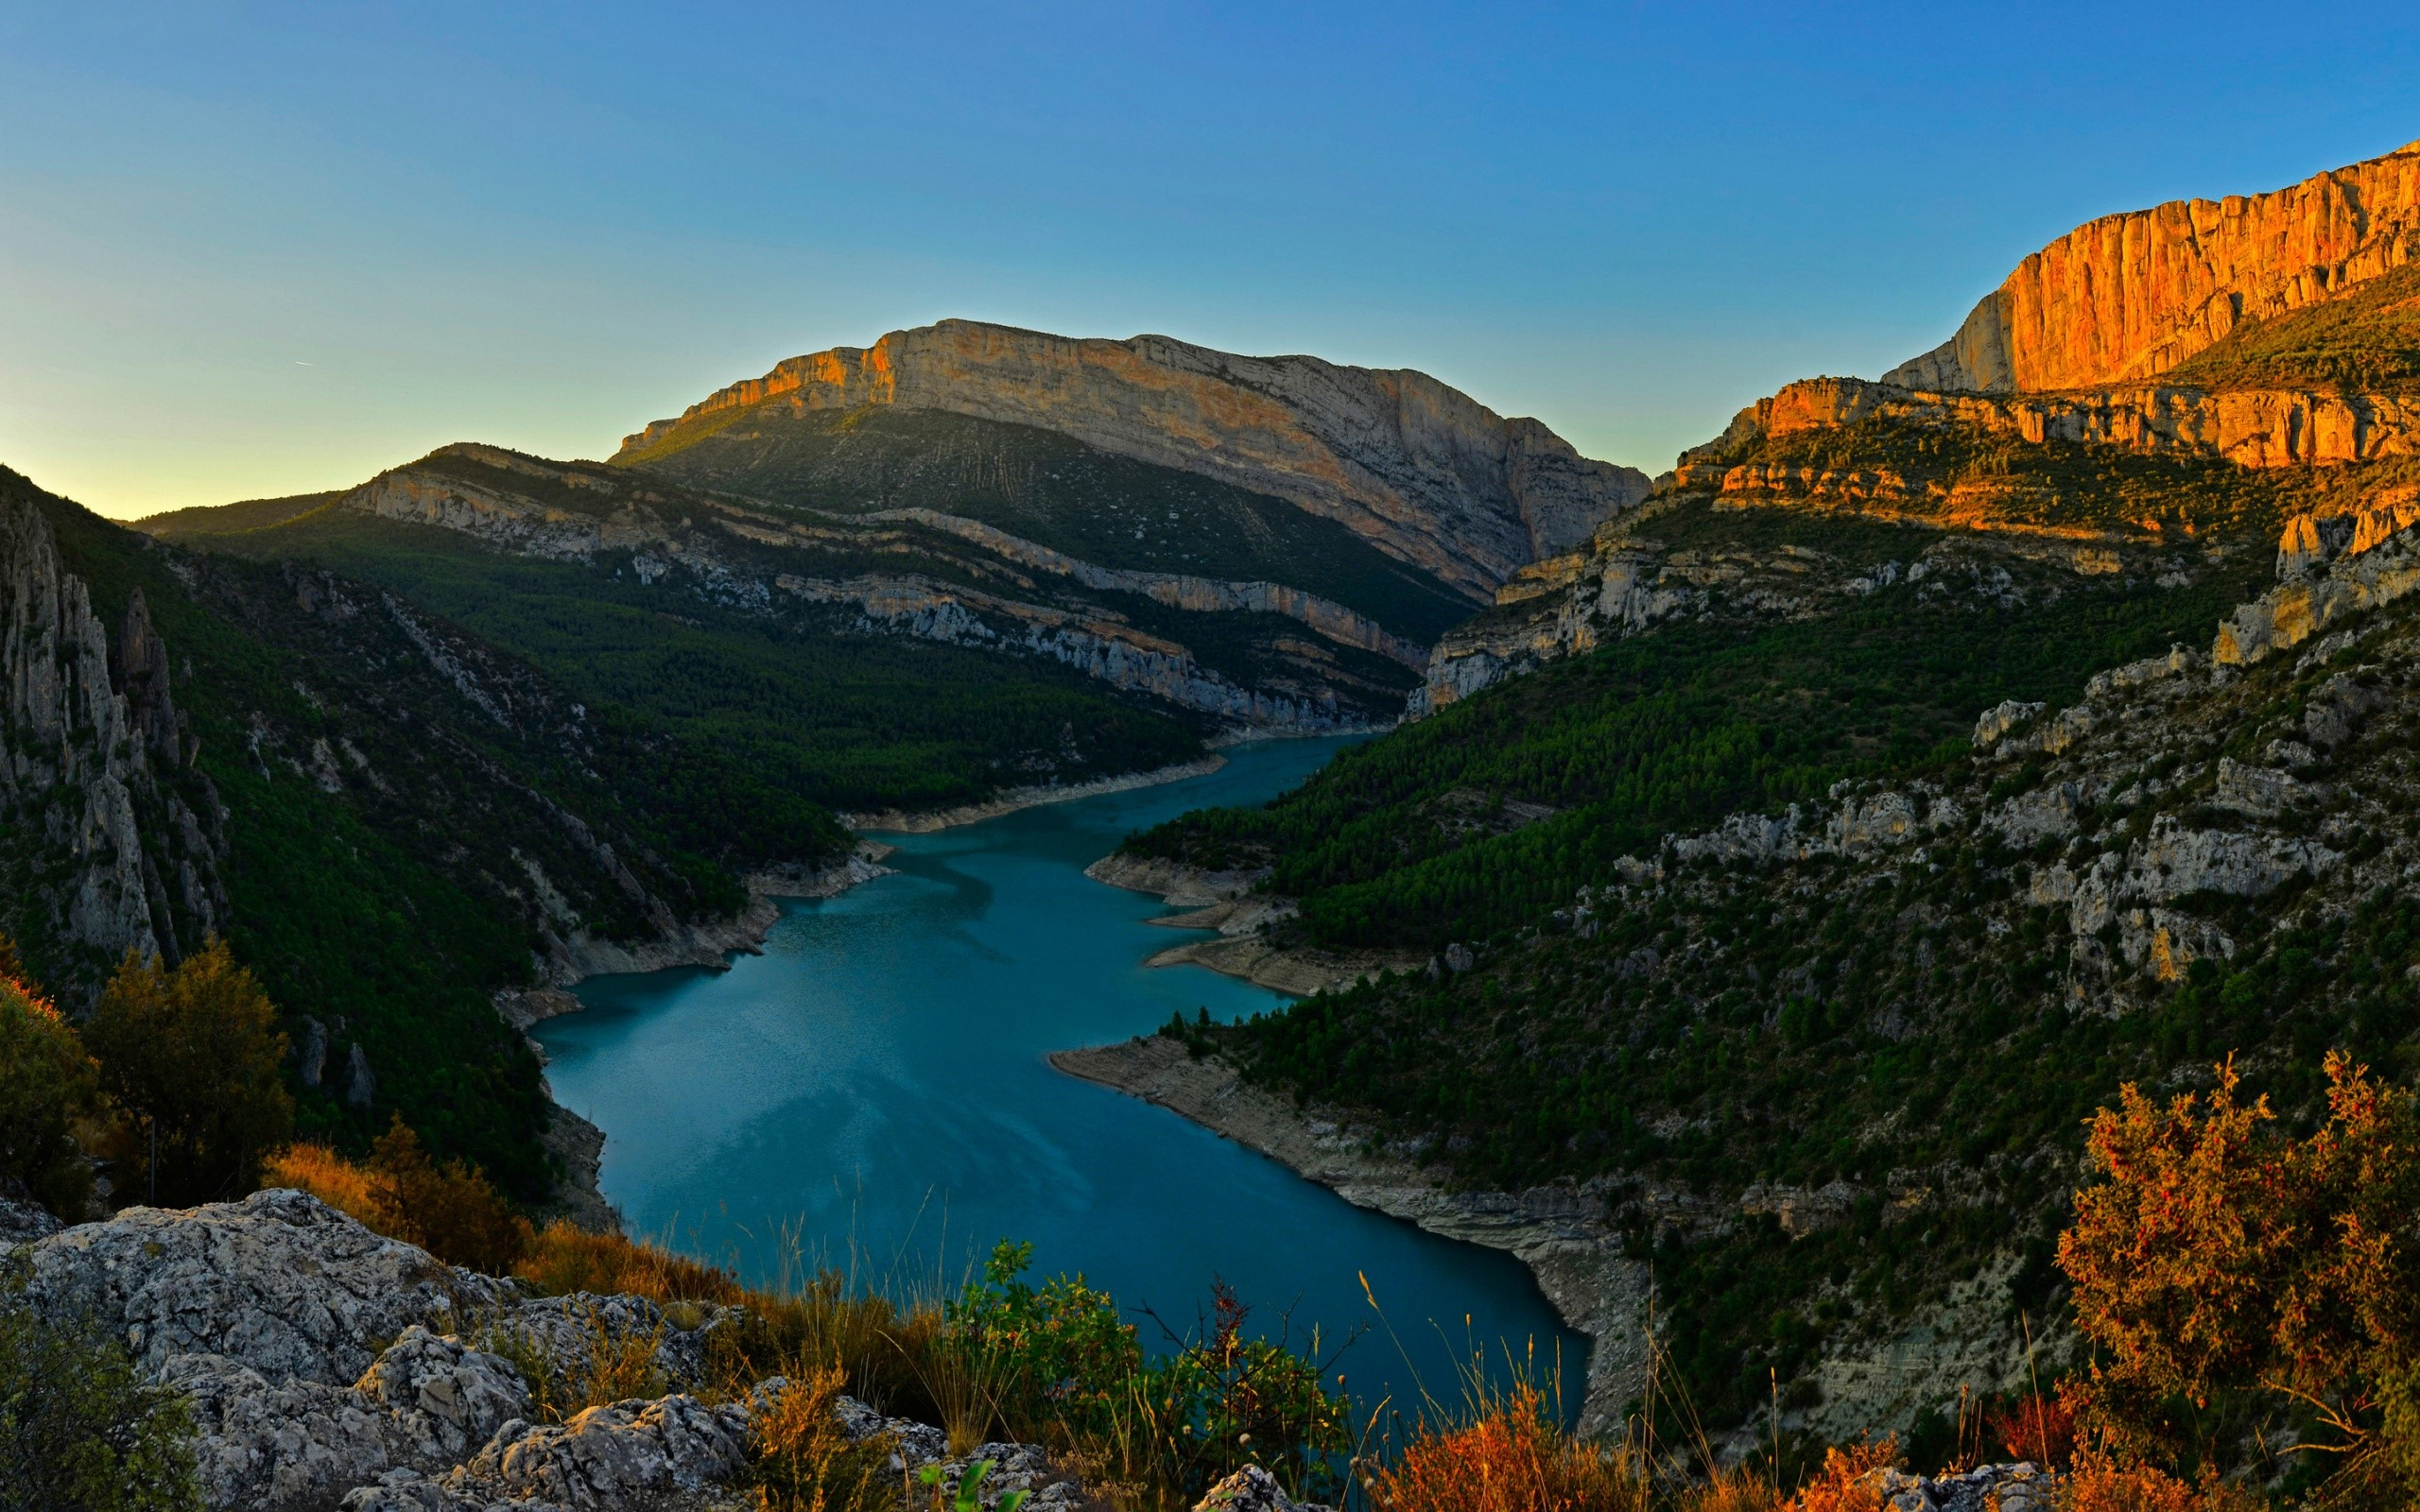 Wallpaper Rio Congost in the mountain ranges of Spain